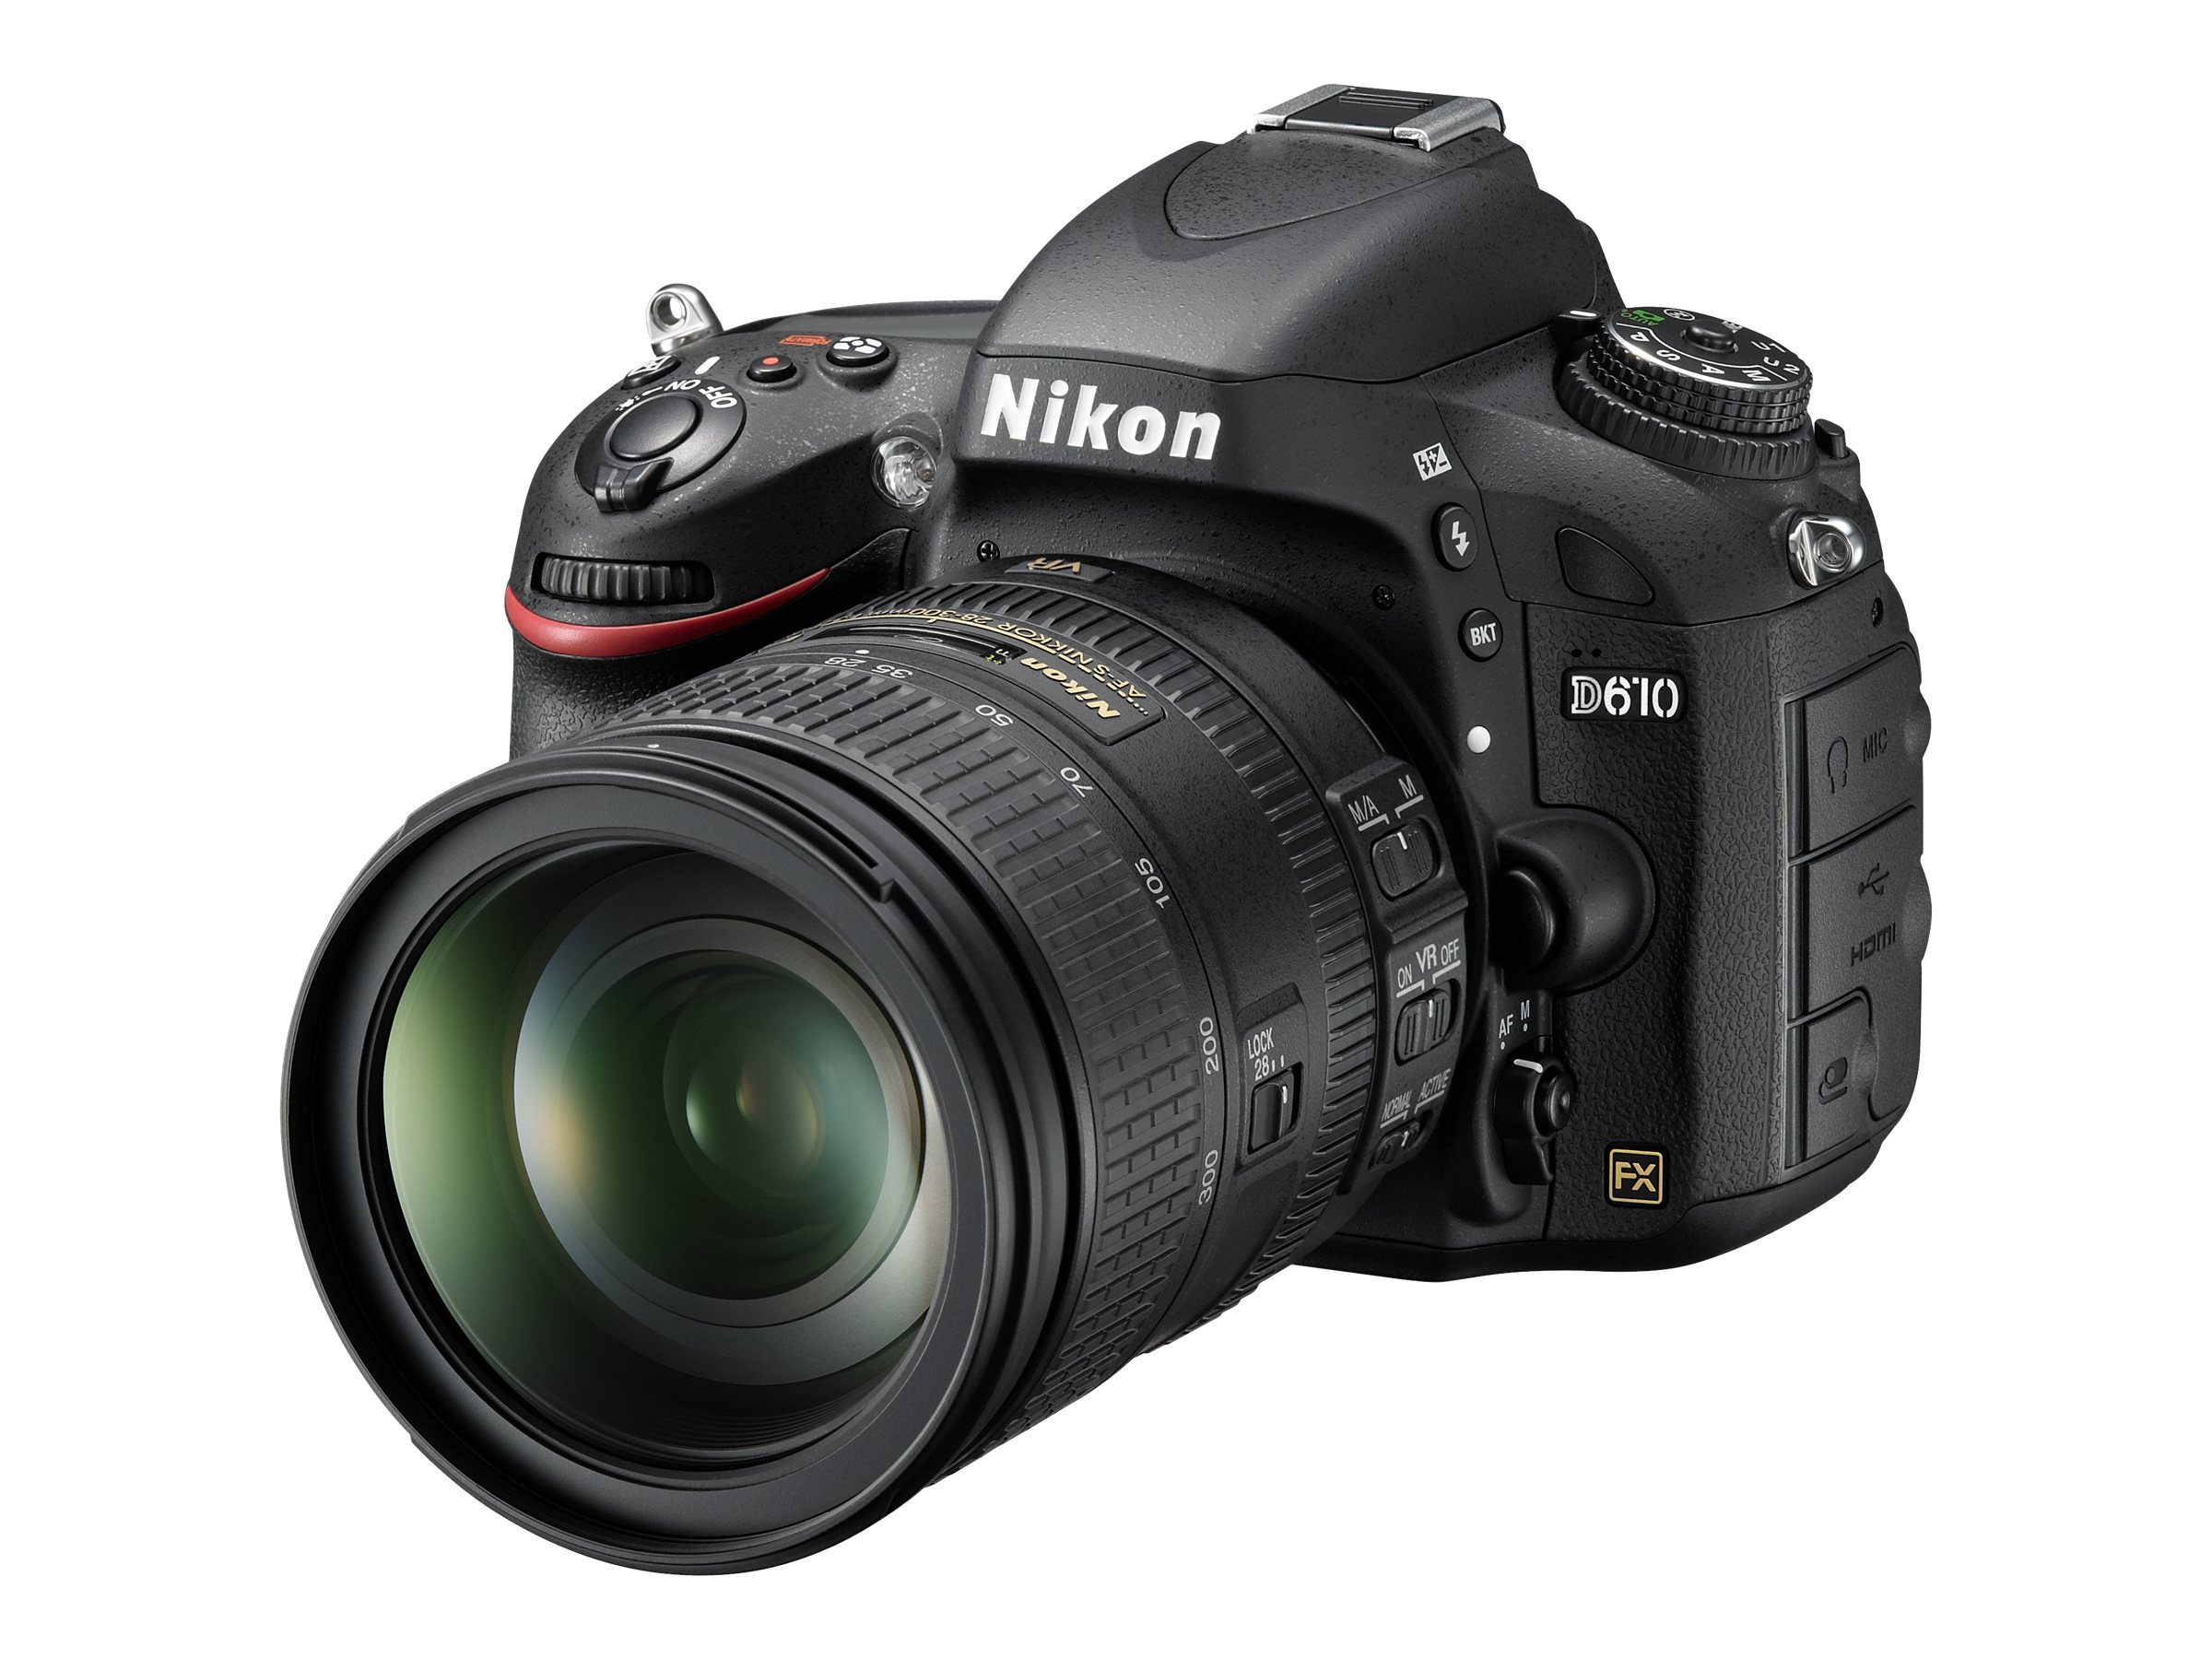 Nikon D610 FX-Format Digital SLR with 28-300mm VR Lens, 13304, 16466884, Cameras - Digital - SLR